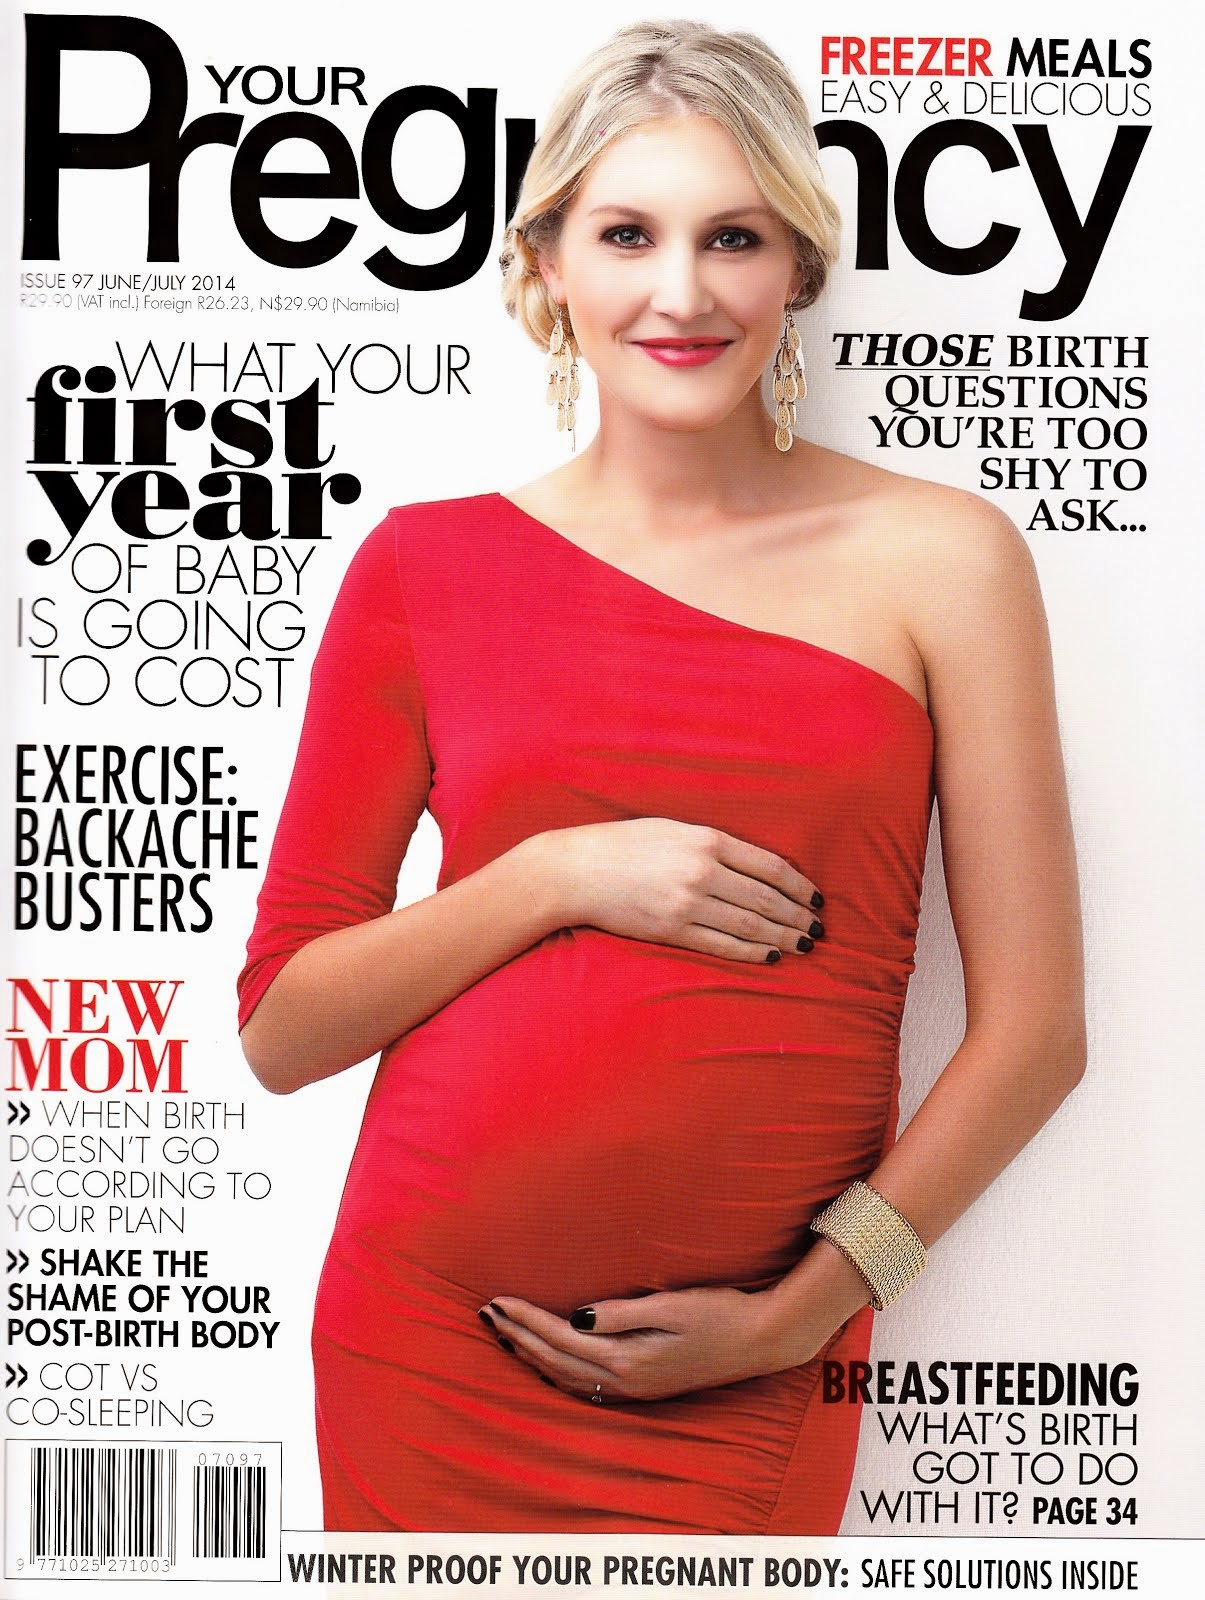 Your Pregnancy Magazine June/July 2014